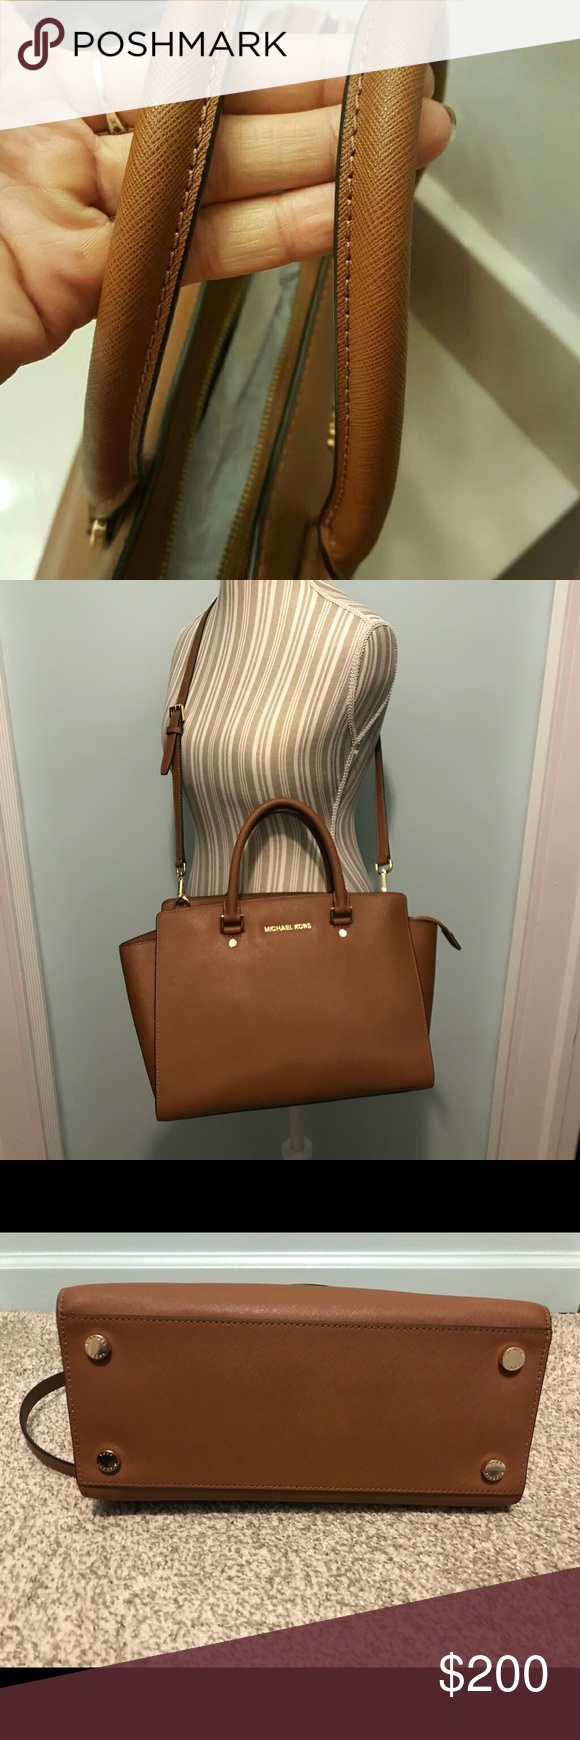 7b217a09c445 ... greece michael kors large selma bag great condition. color is called  luggage. dimensions are